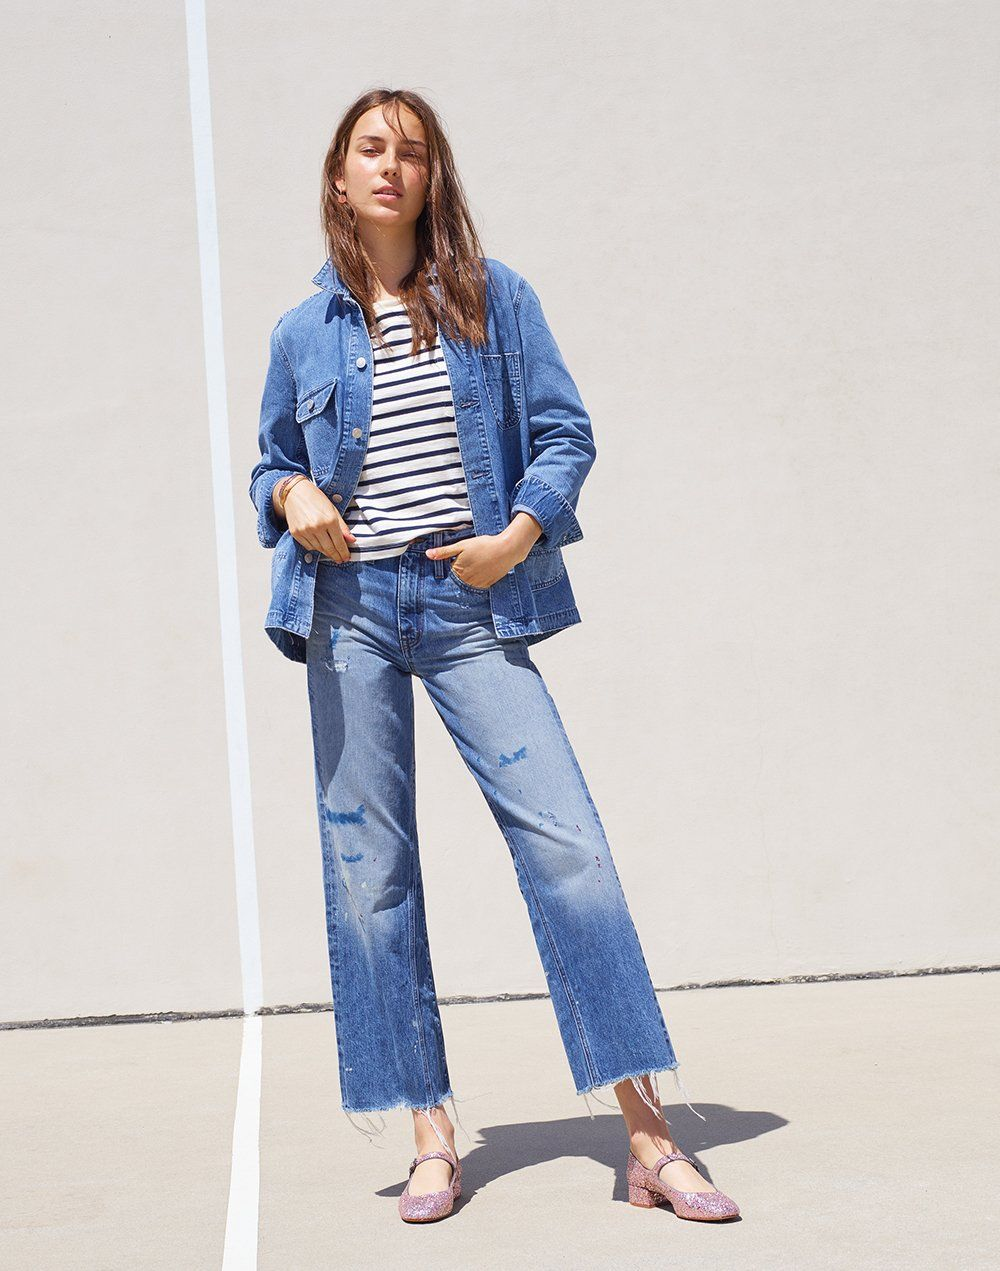 fa278641a3 madewell rivet   thread wide-leg crop jeans worn with selvedge denim chore  coat